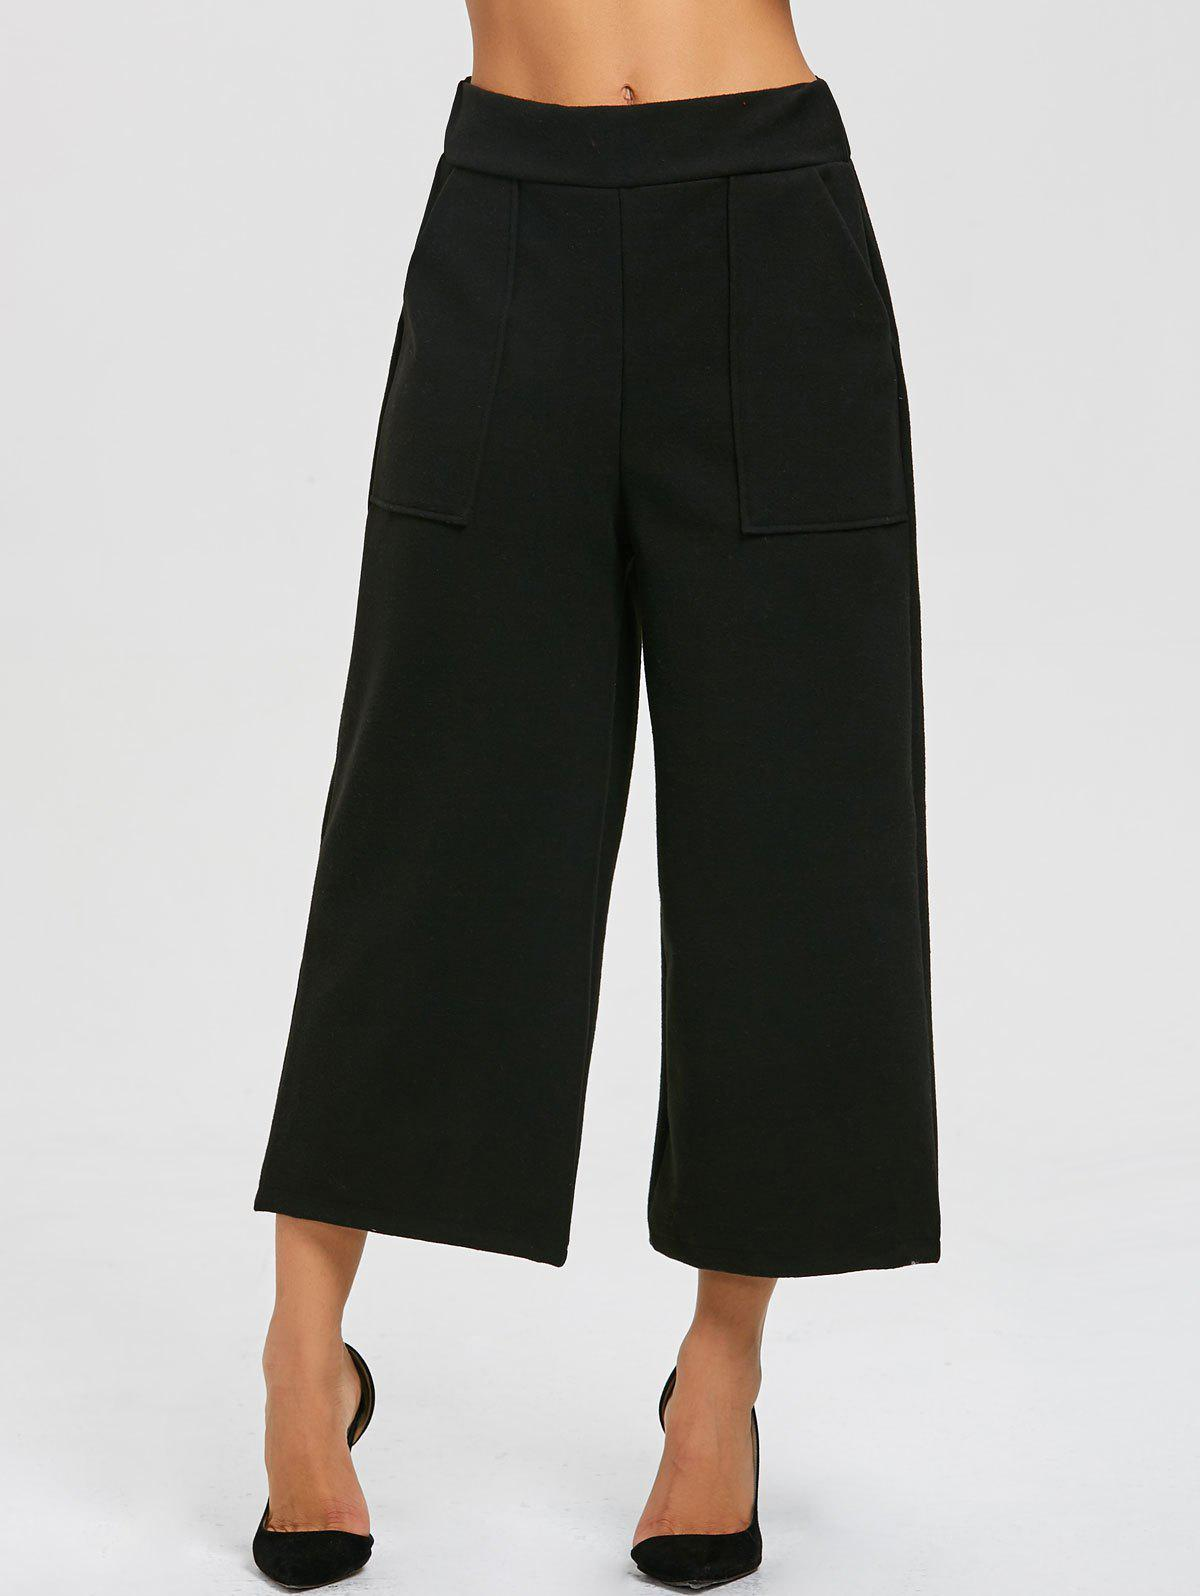 Capri High Waisted Palazzo Pants - BLACK L